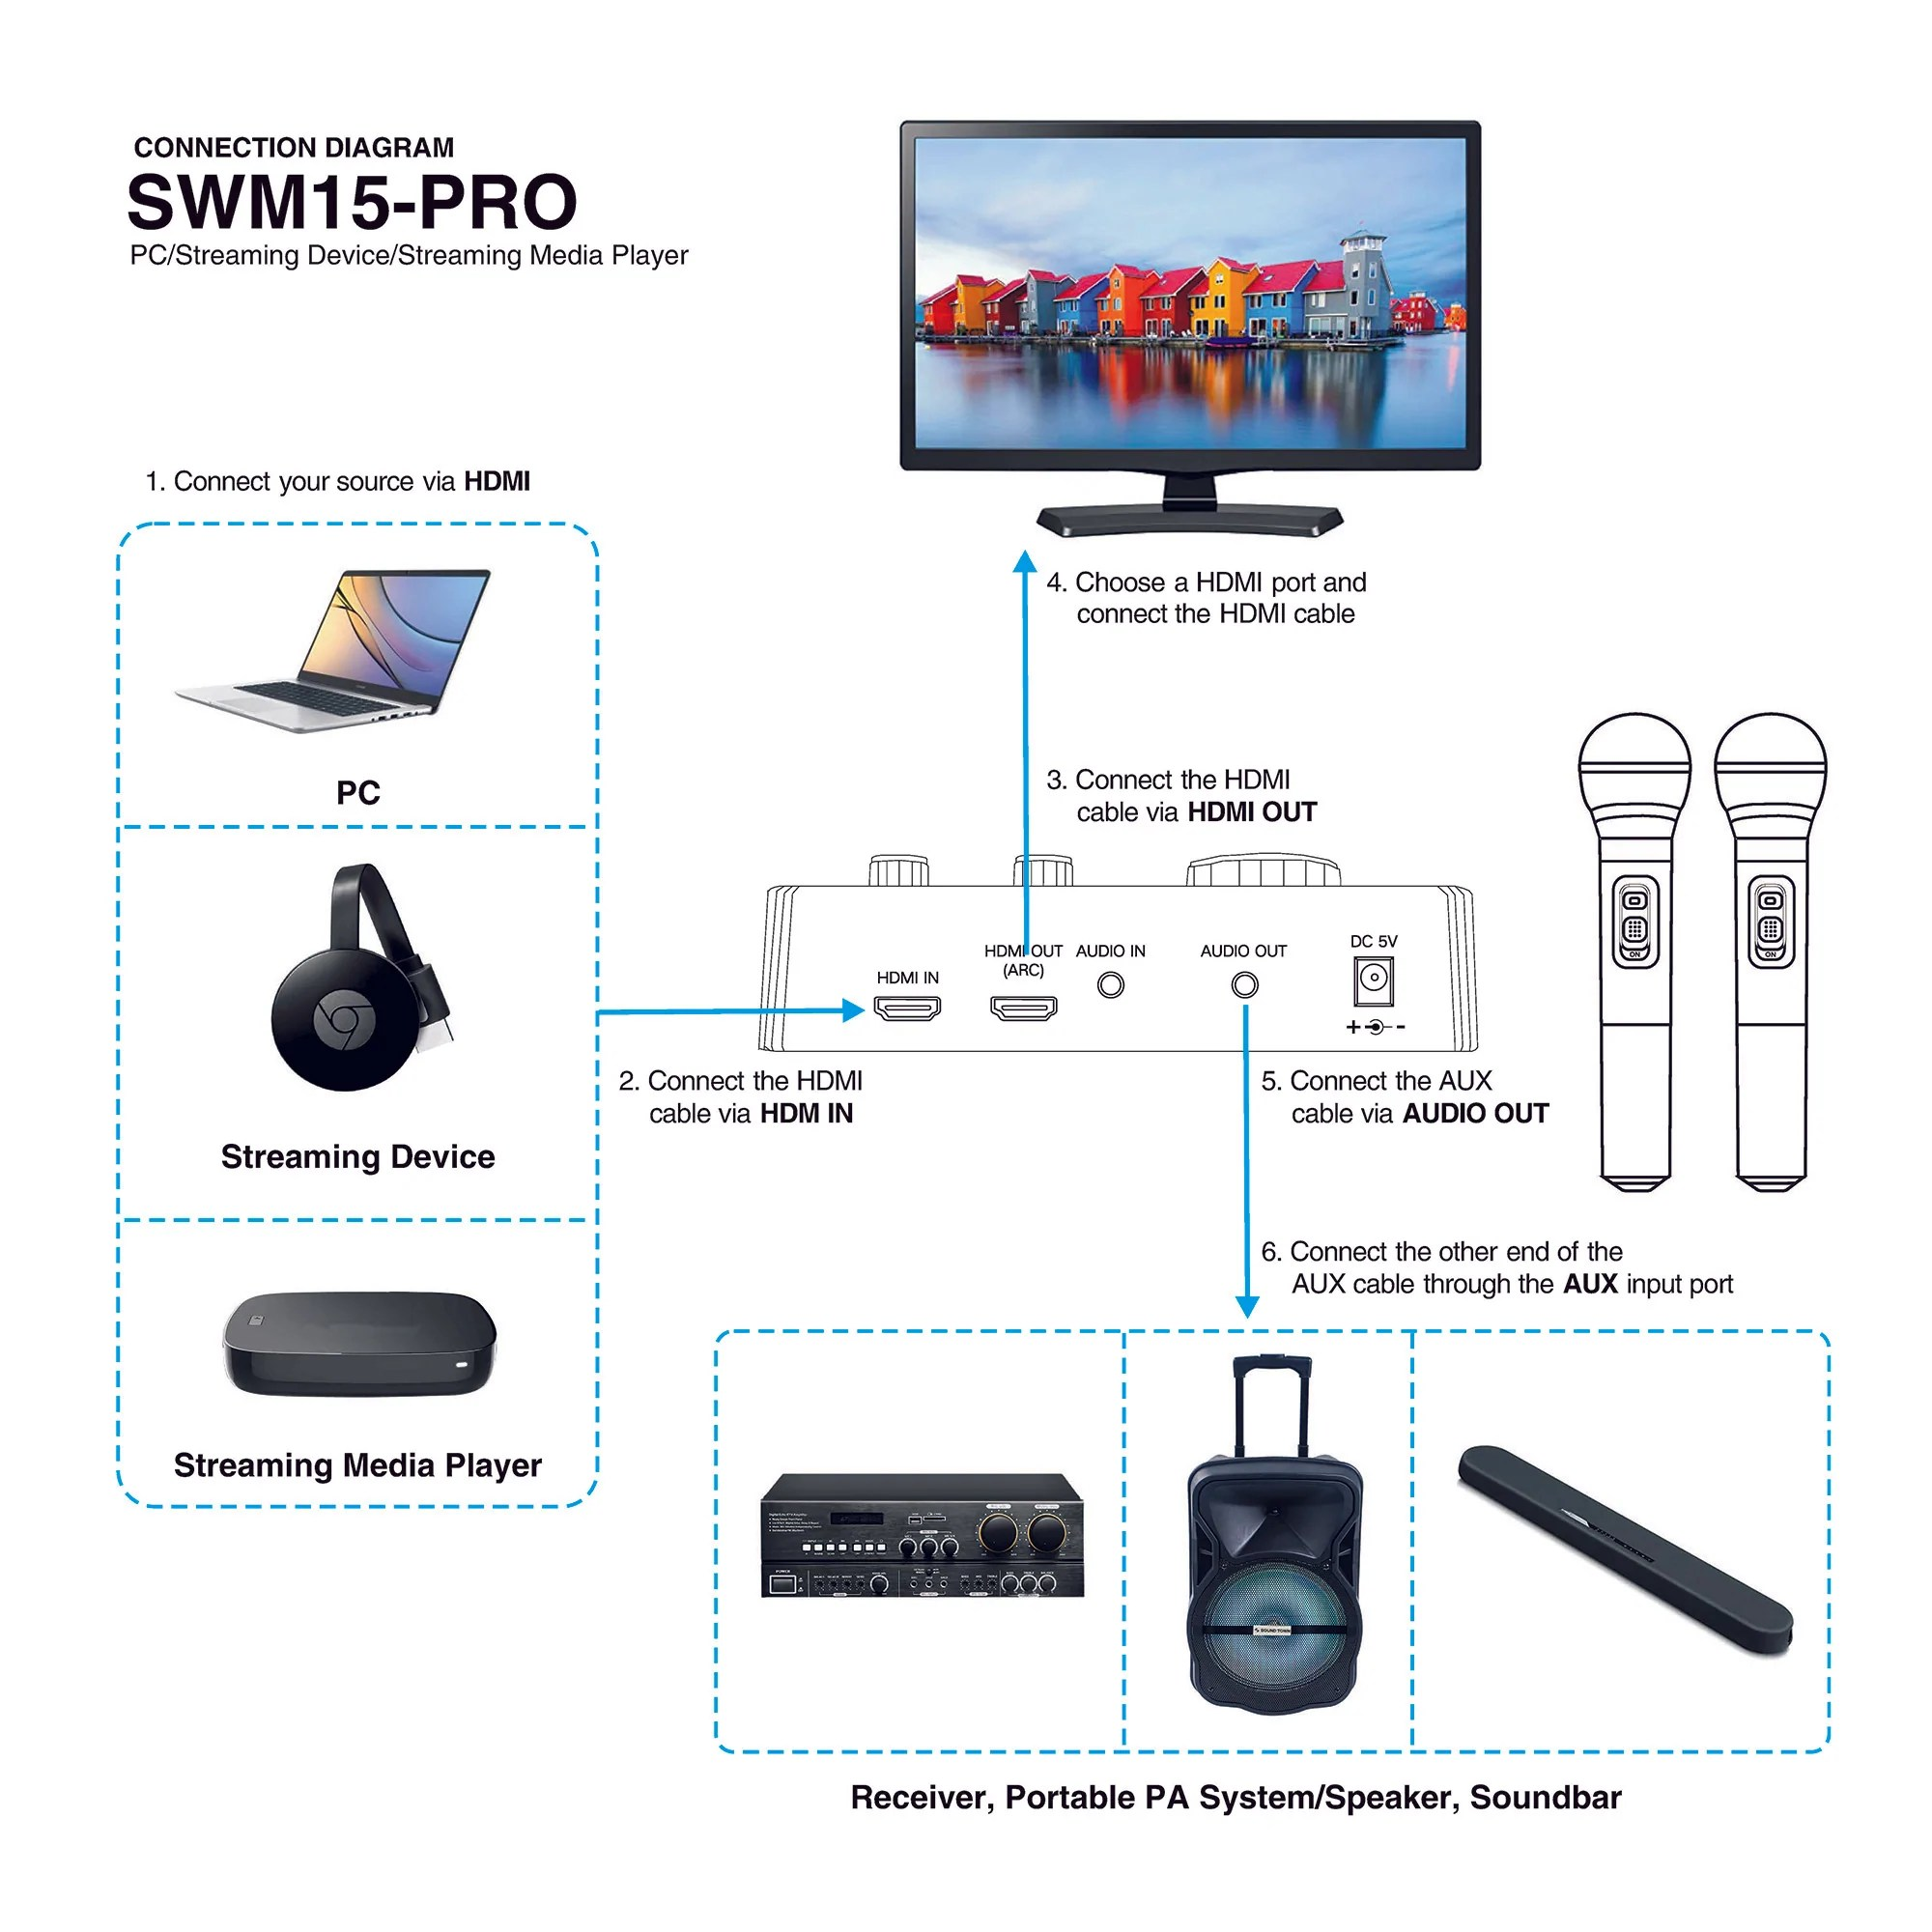 hight resolution of swm15 pro pc streaming device laptop google chromecast media player connection diagram how to connect